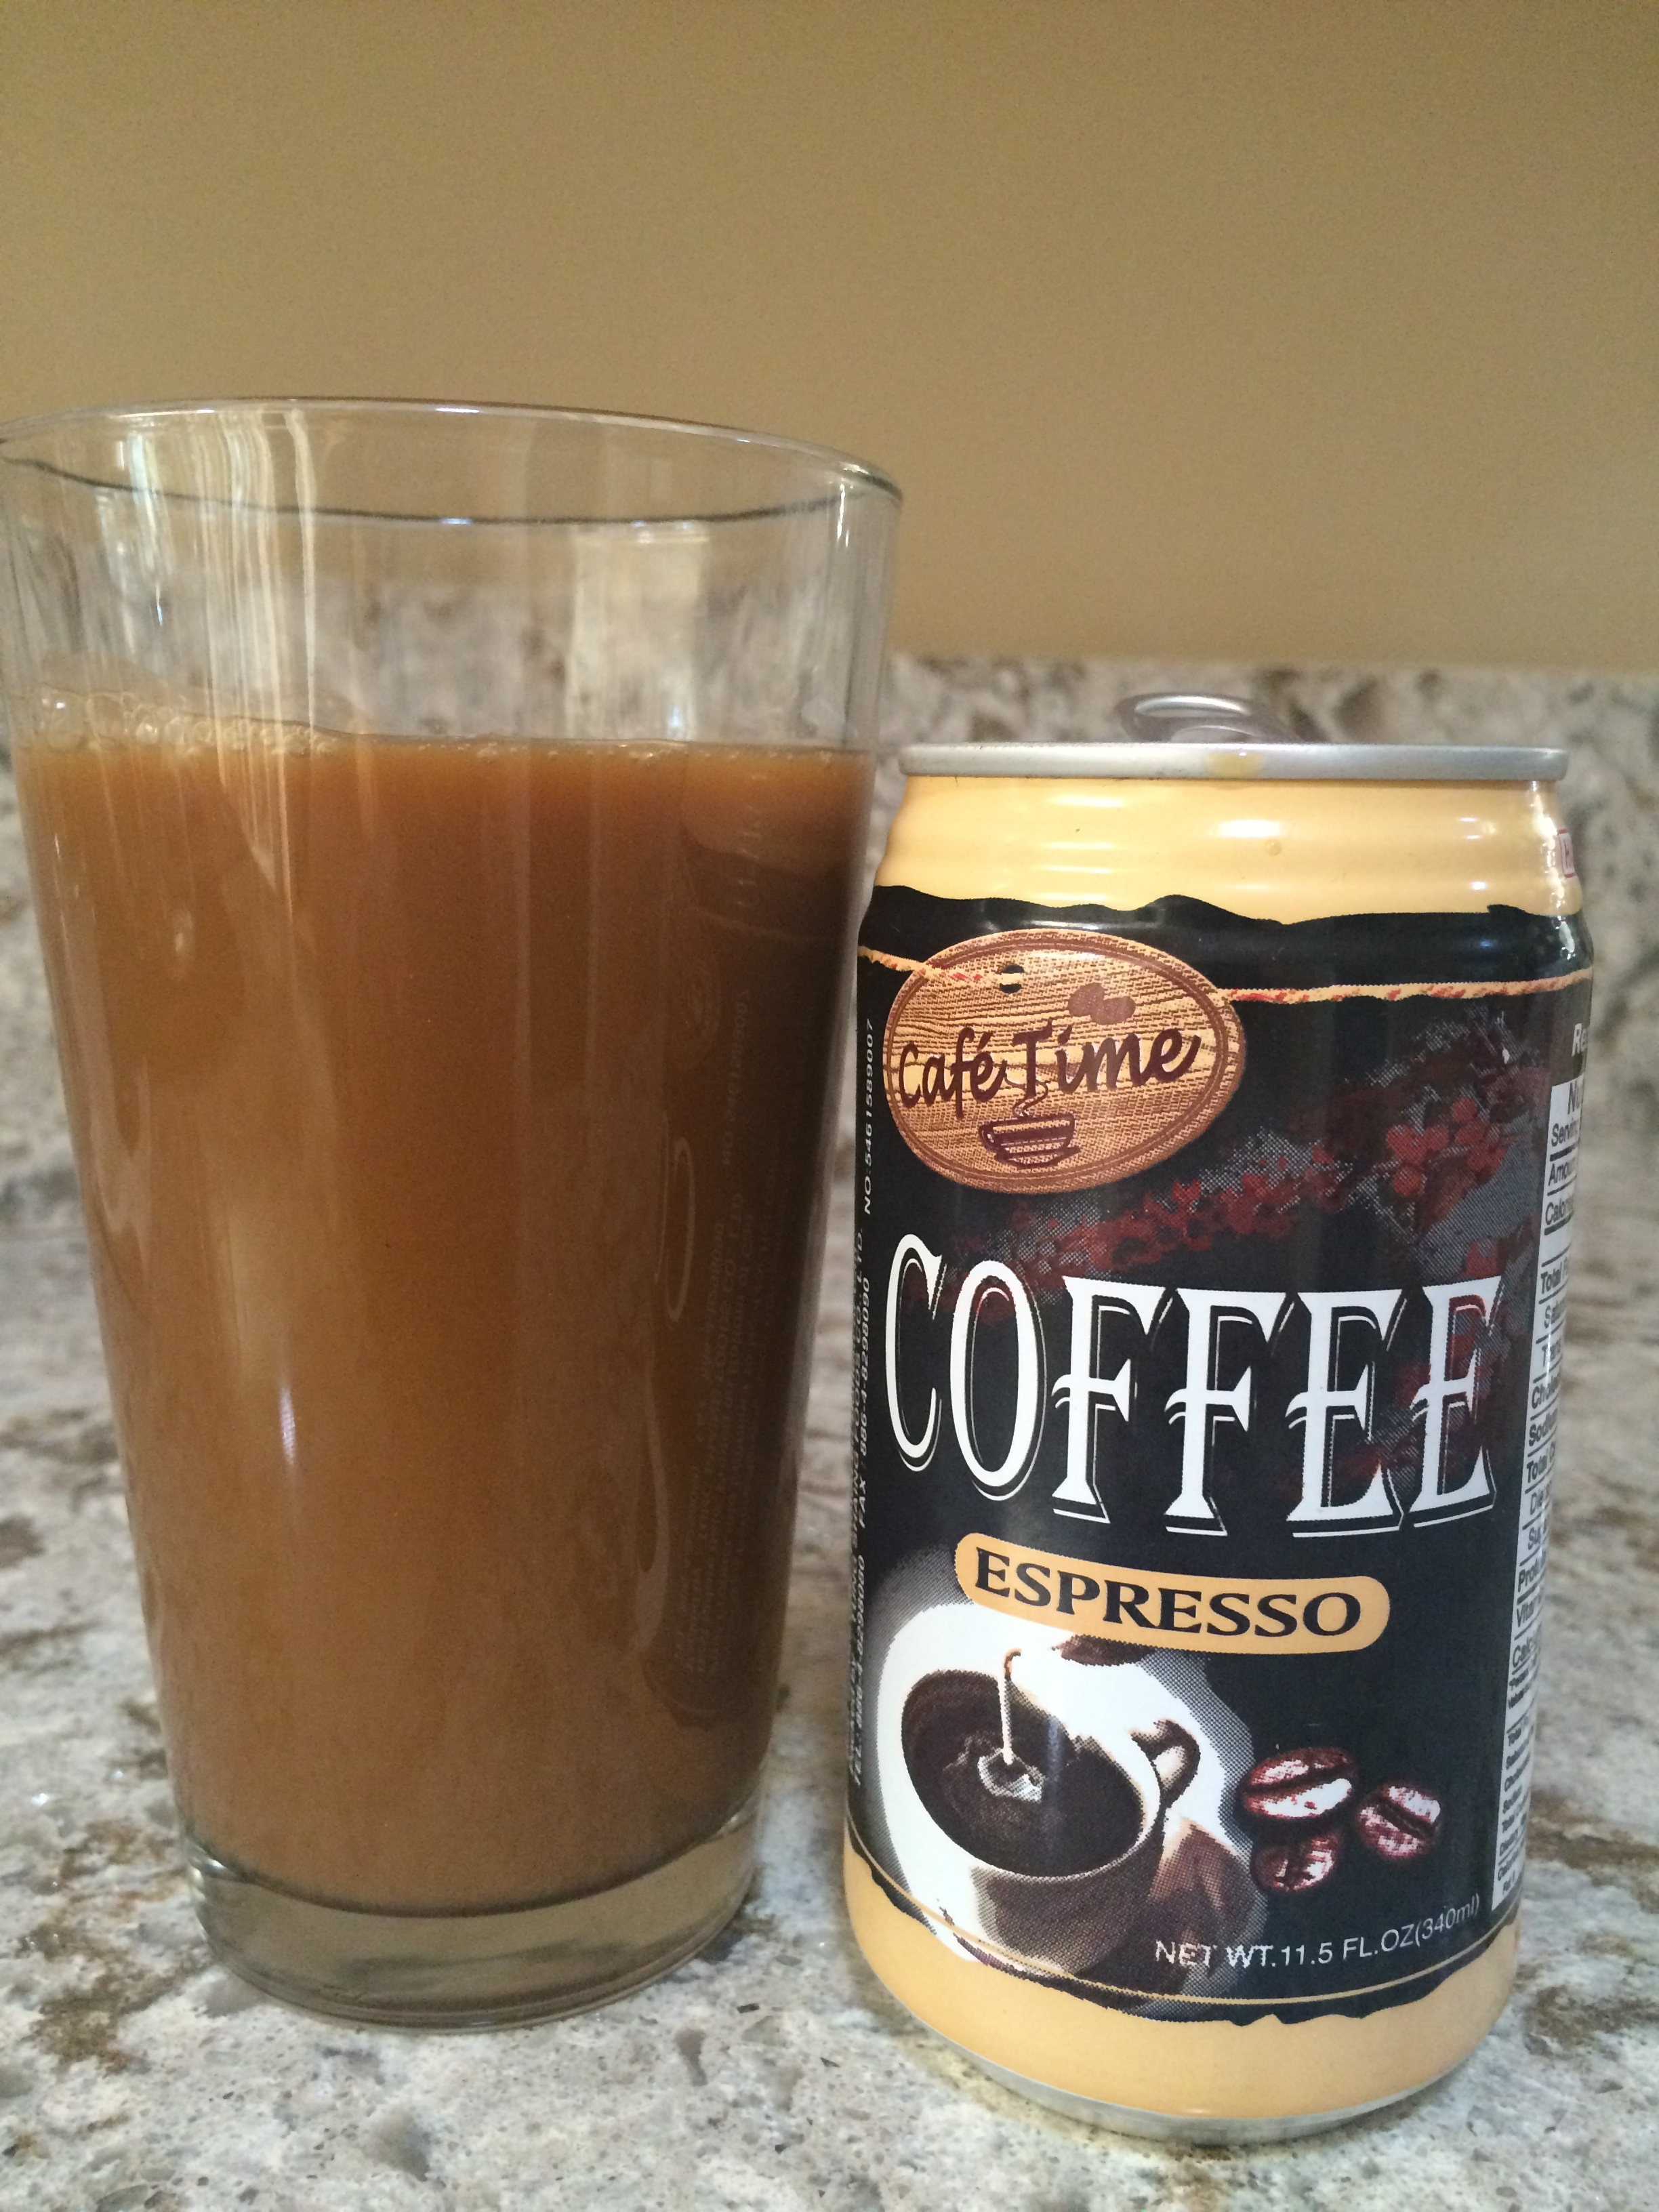 227e833230c2 Canned Coffee 18 - Café Time Espresso — The Search For The Perfect Cup